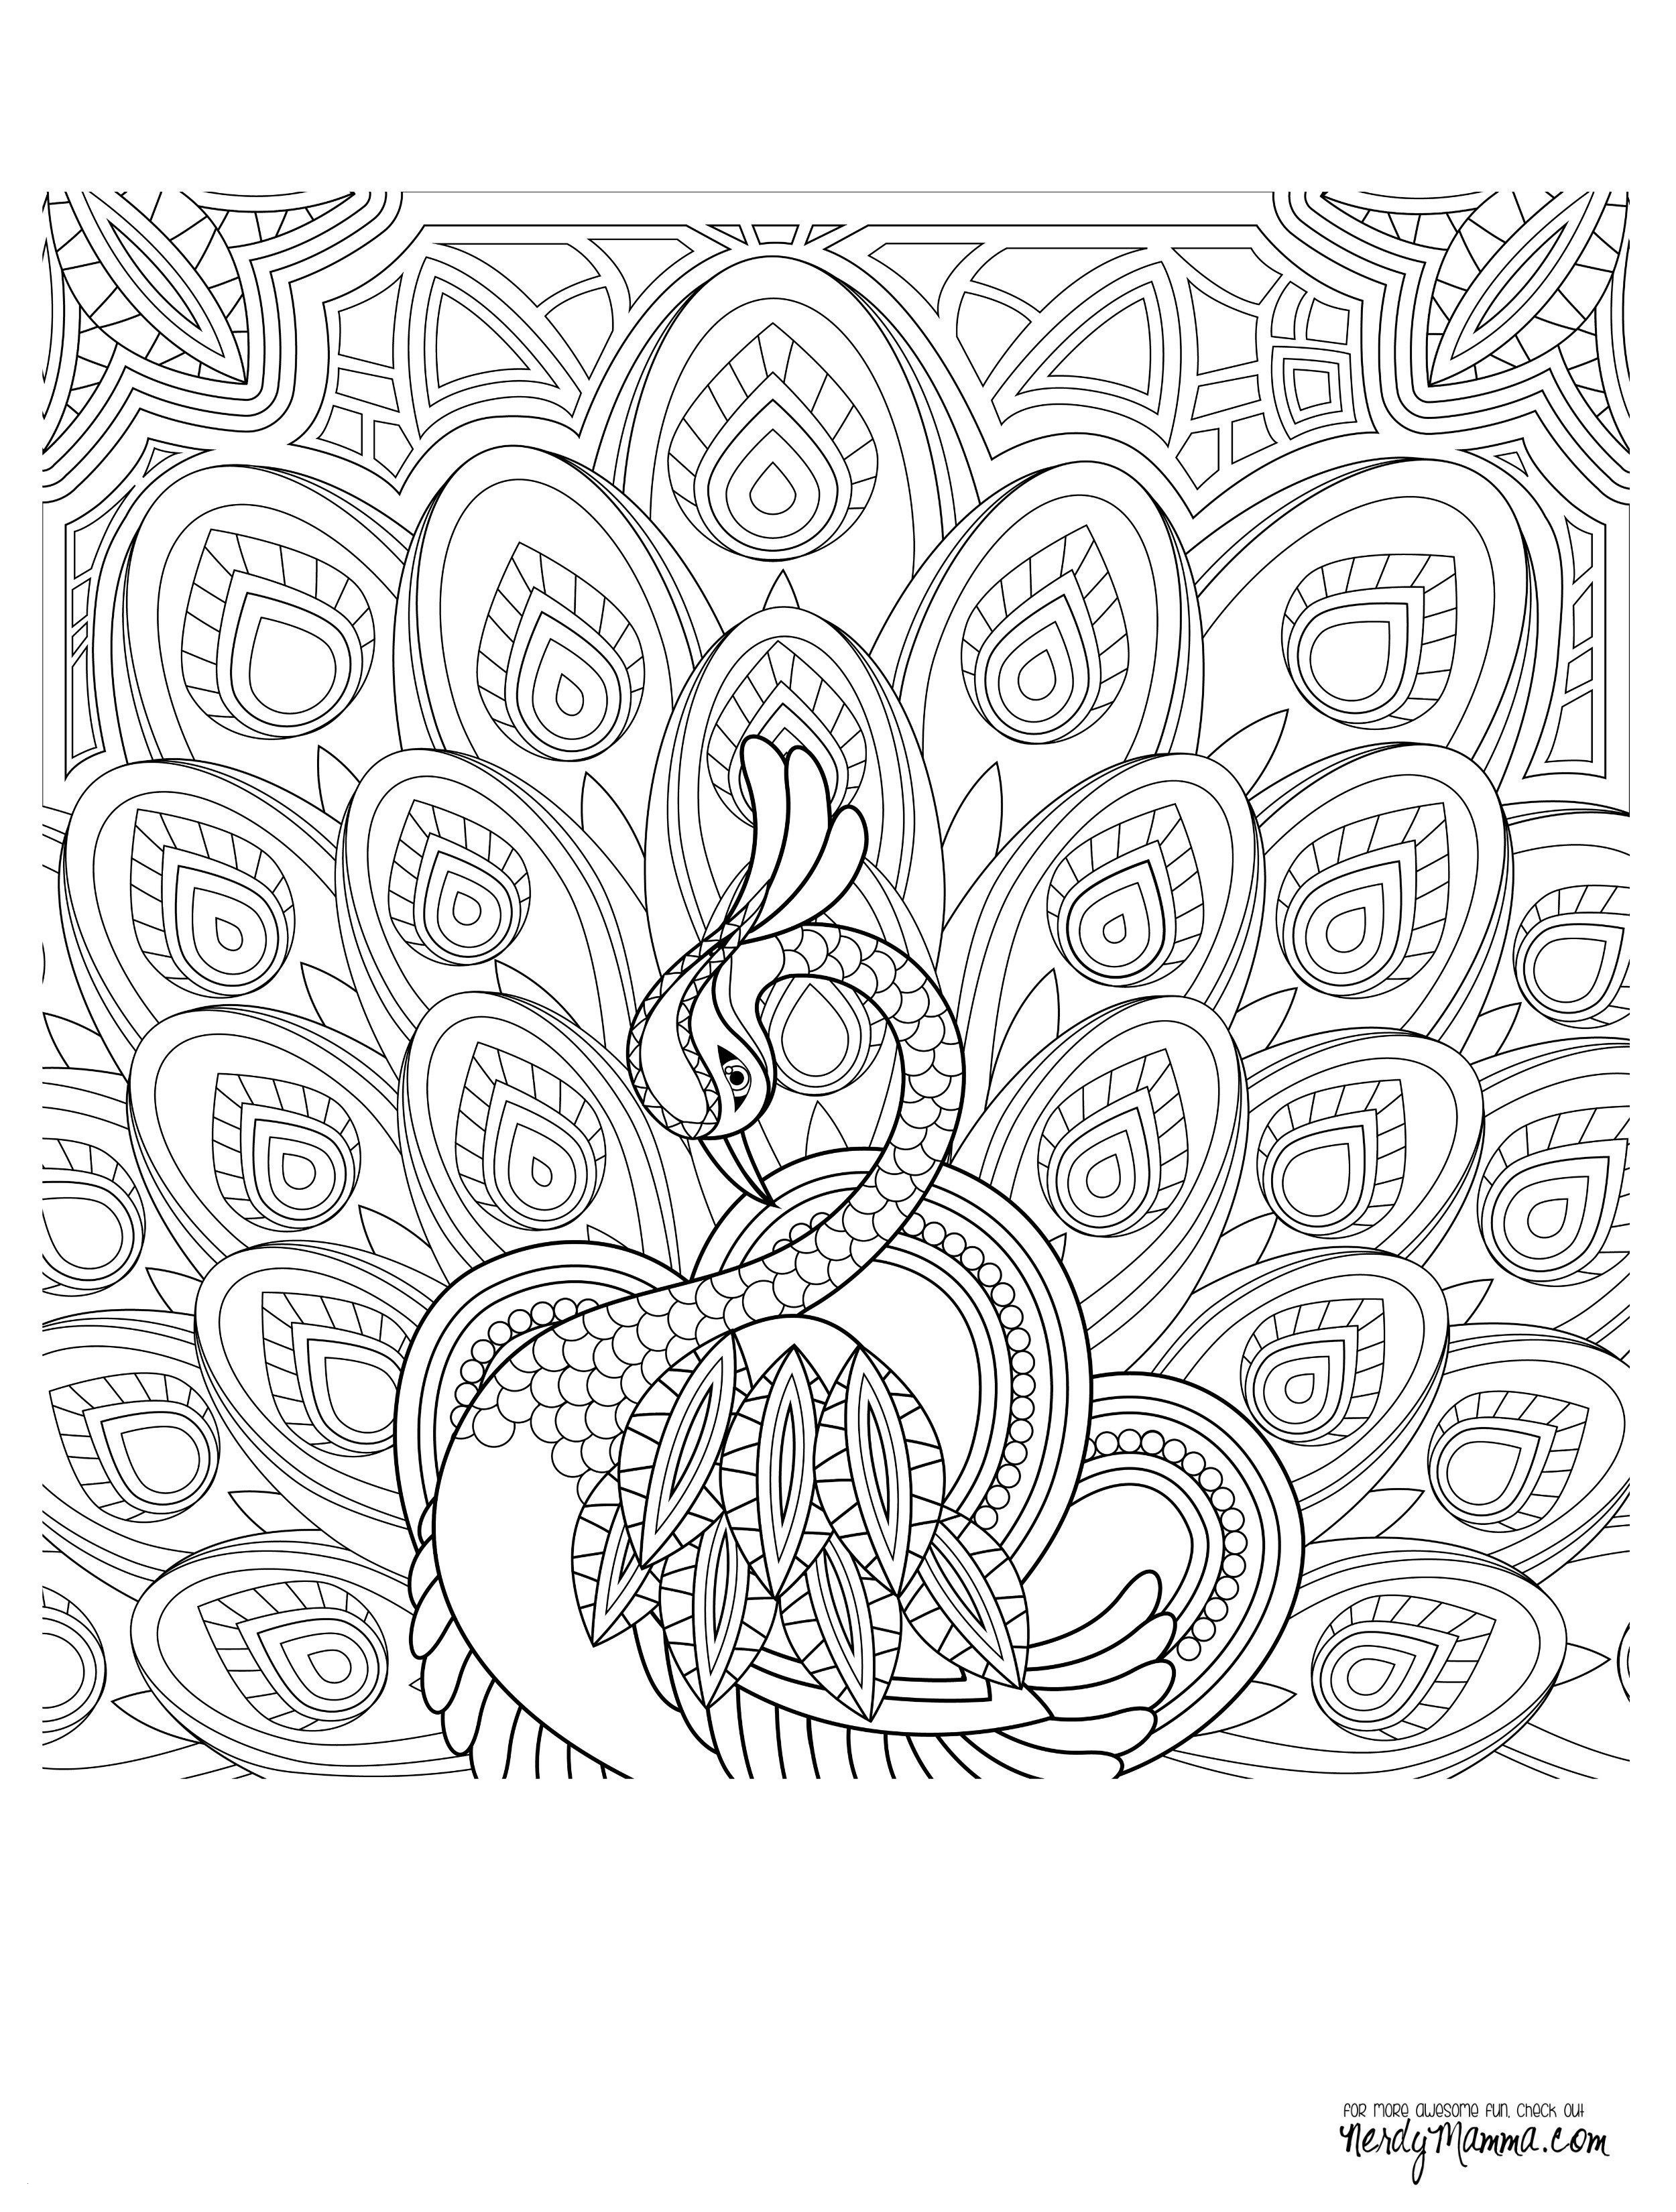 Merry Christmas Grandma Coloring Pages With Tomte Page